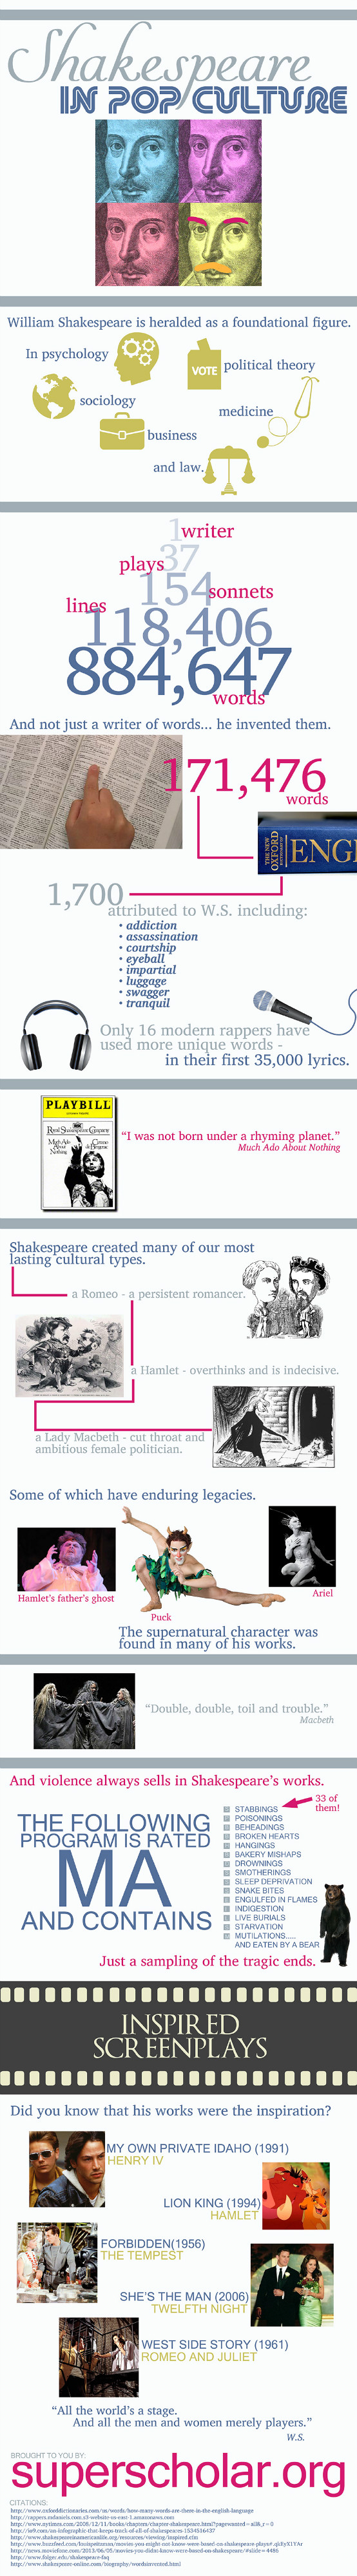 What You Didn't Know About Shakespeare [Infographic]